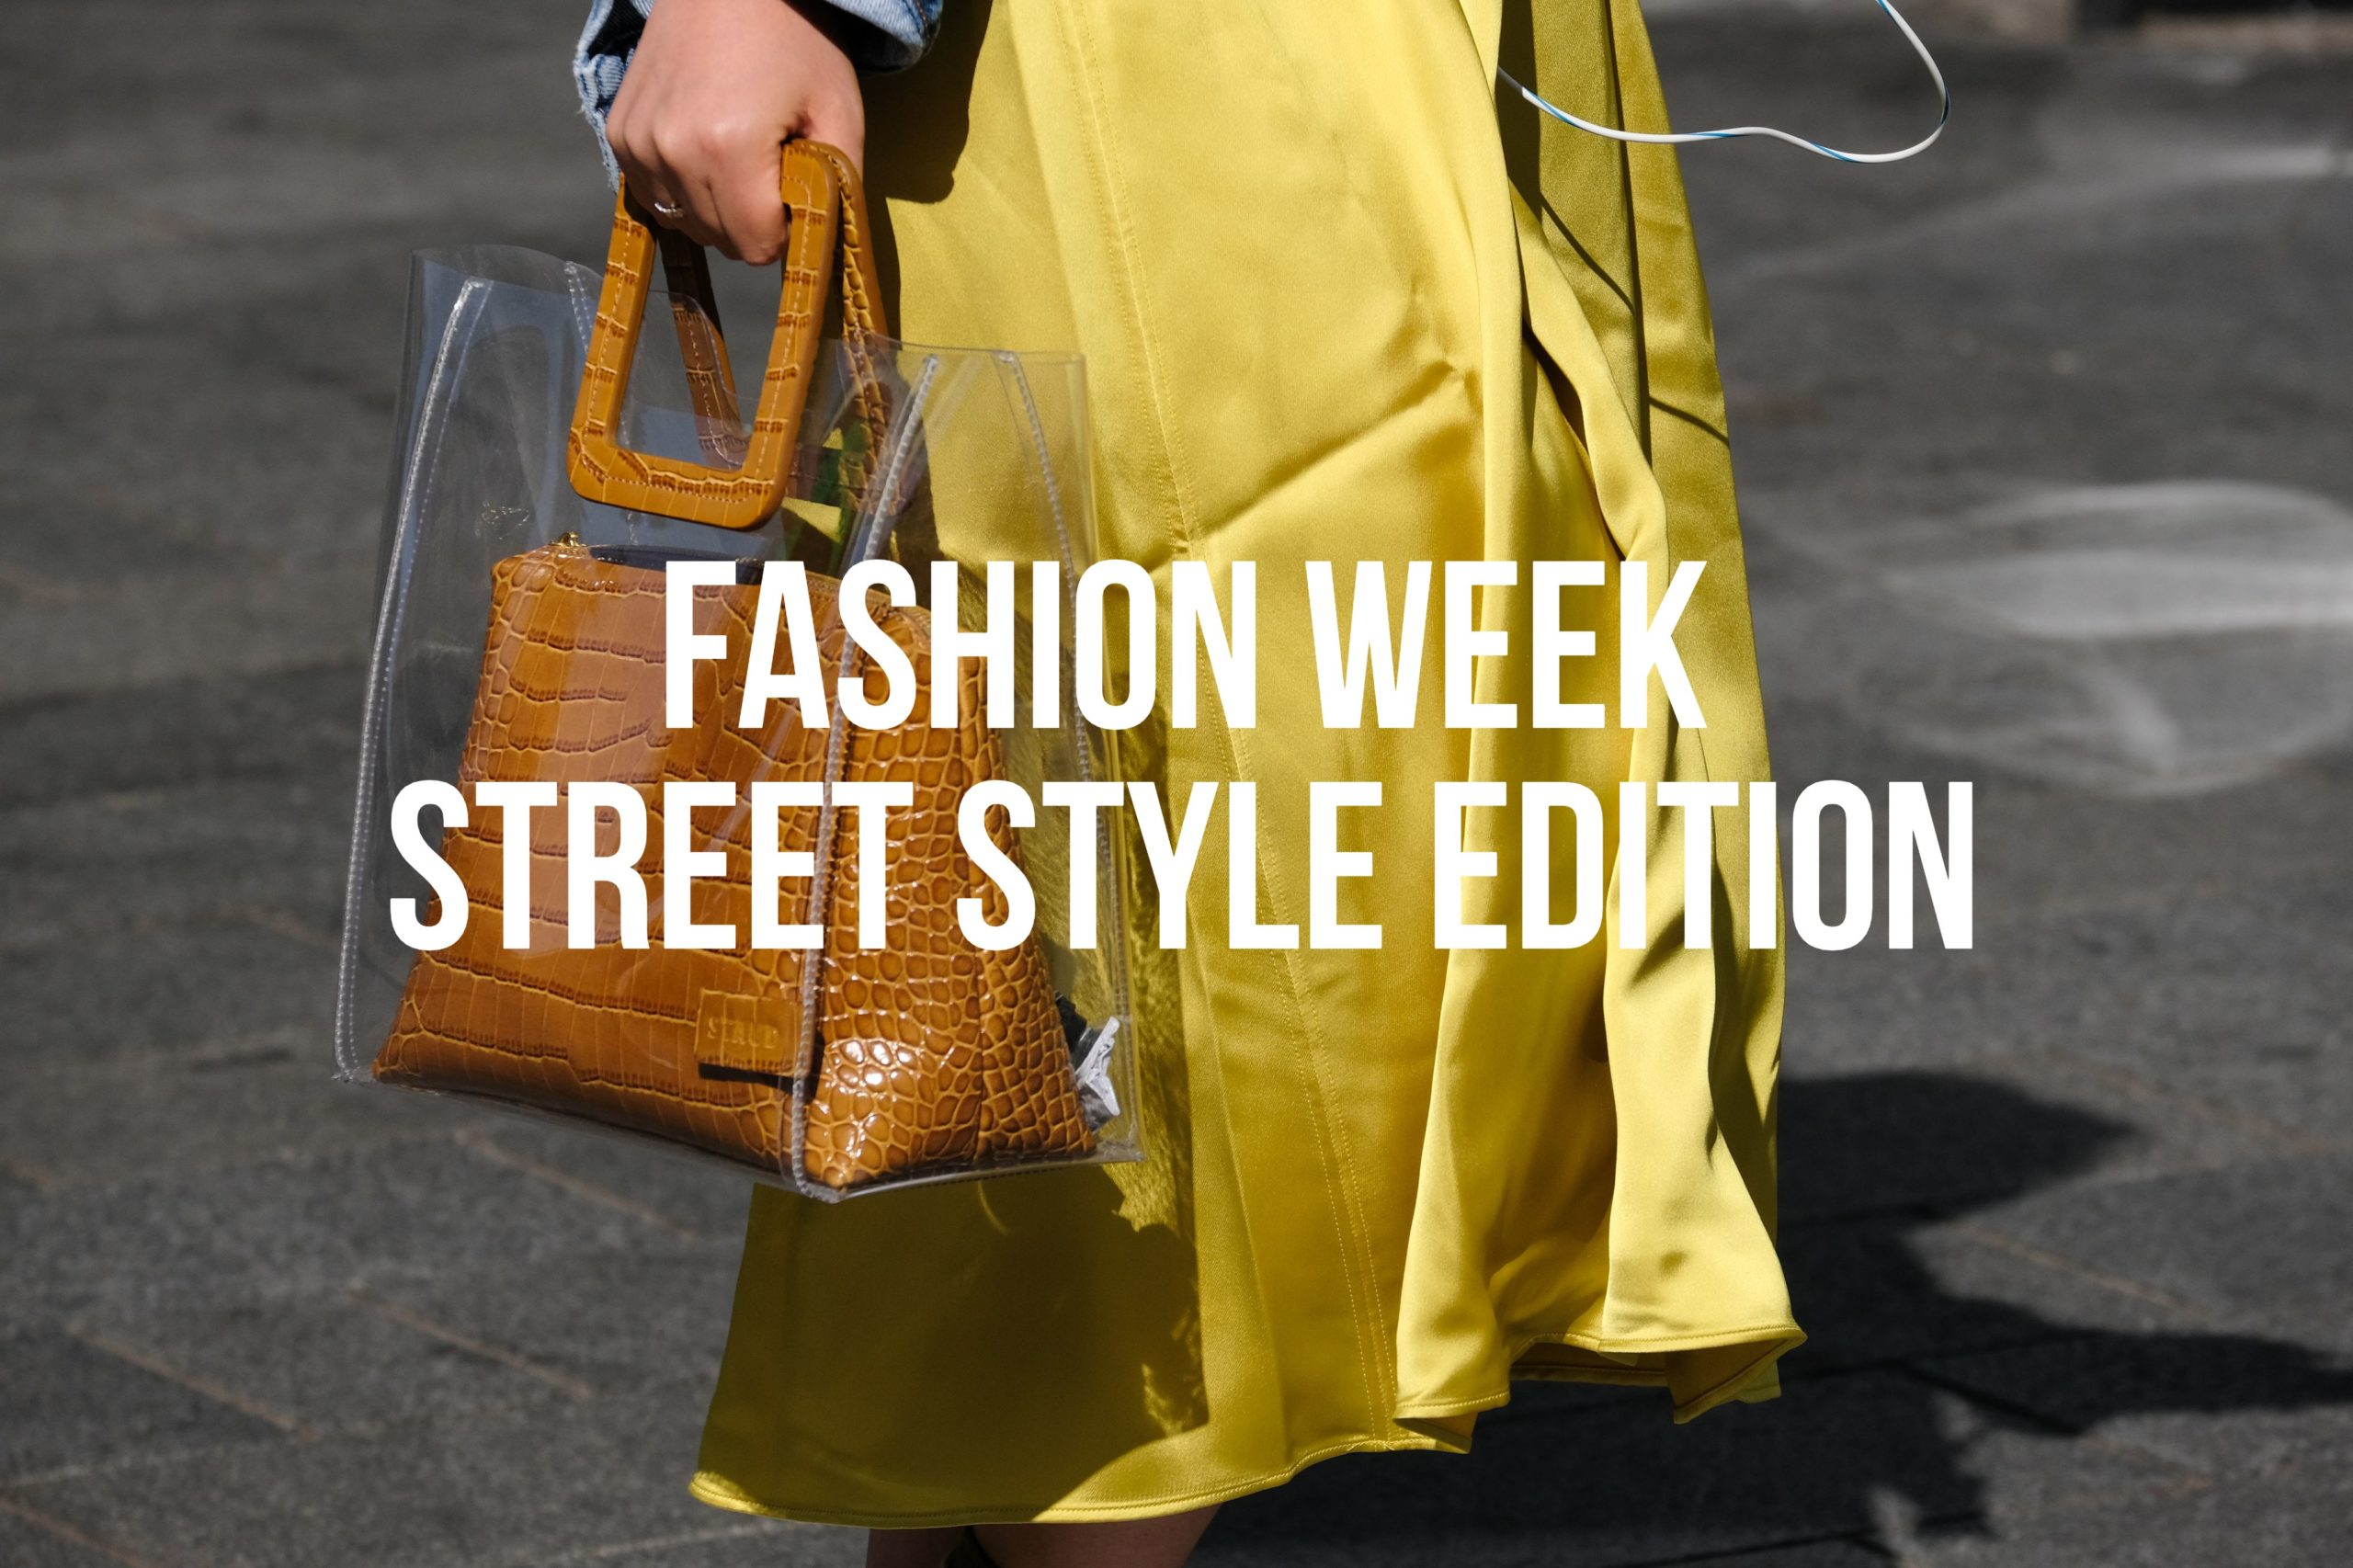 Brown Handbag Yellow Dress Fashion Week 2020